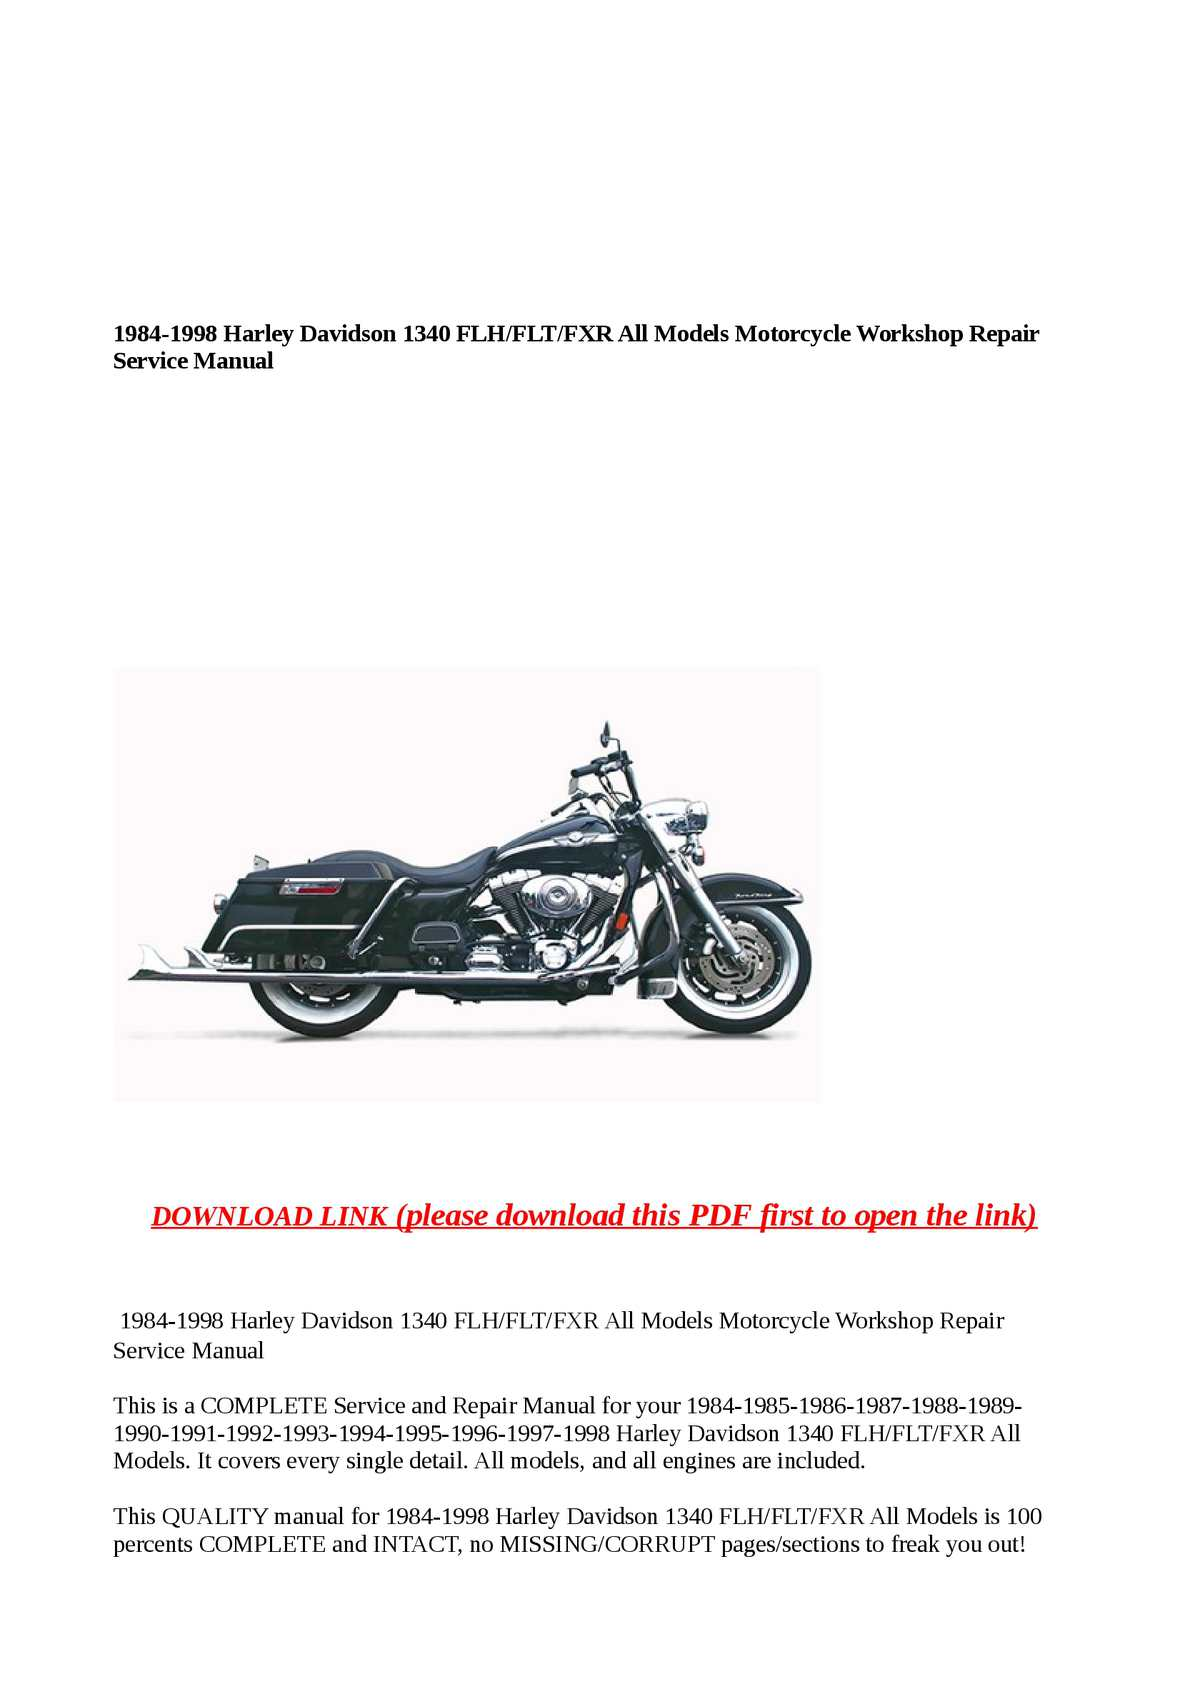 p1 calam�o 1984 1998 harley davidson 1340 flh flt fxr all models 1992 FXRS Wiring-Diagram at gsmx.co